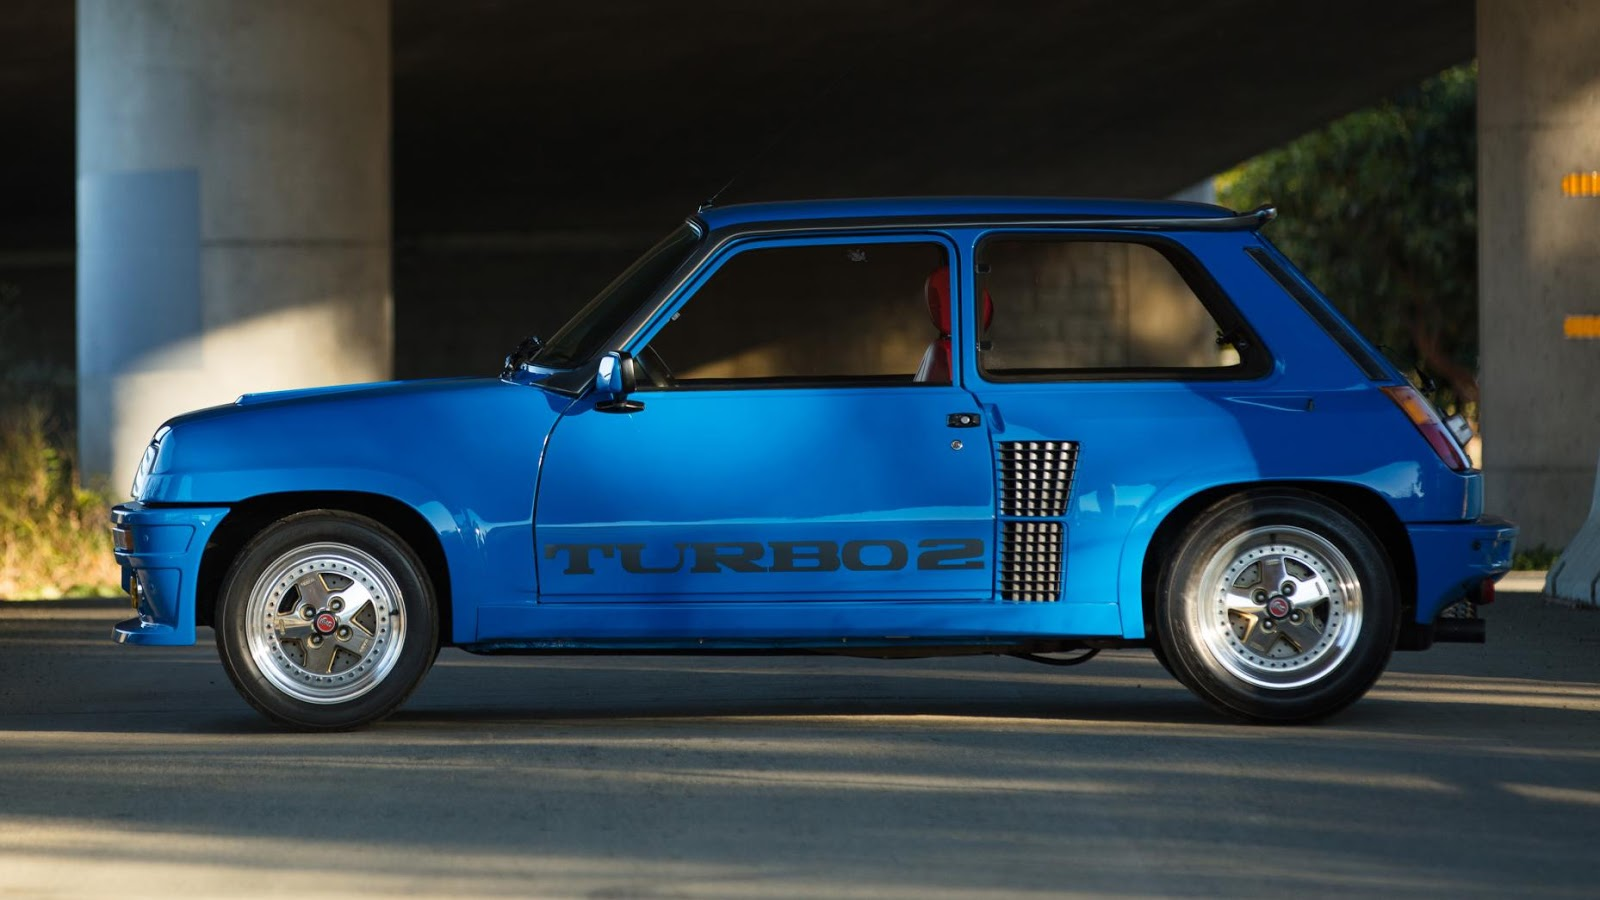 1983 Renault 5 Turbo II